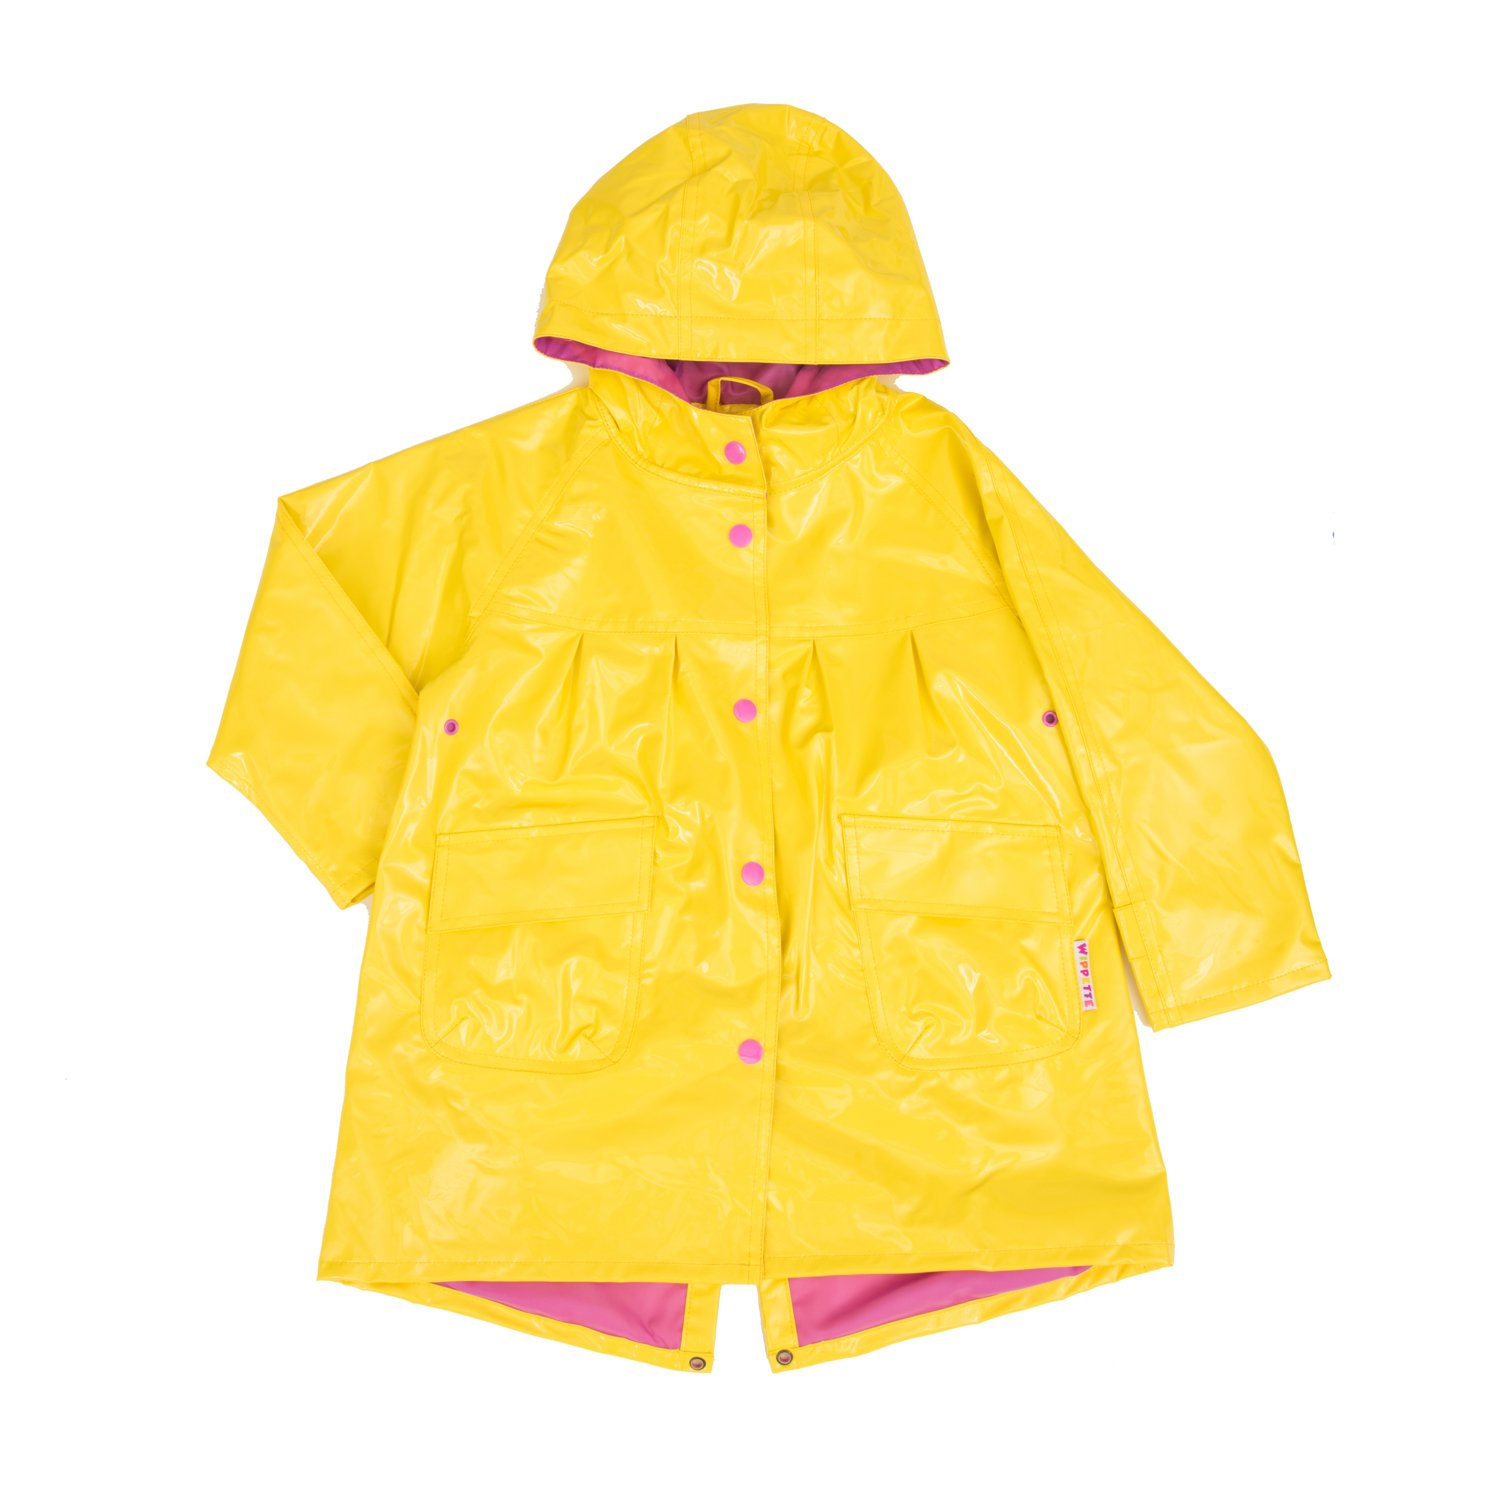 Wippette Colored Rain Jacket For Little Girls & Toddlers, Yellow, 2T